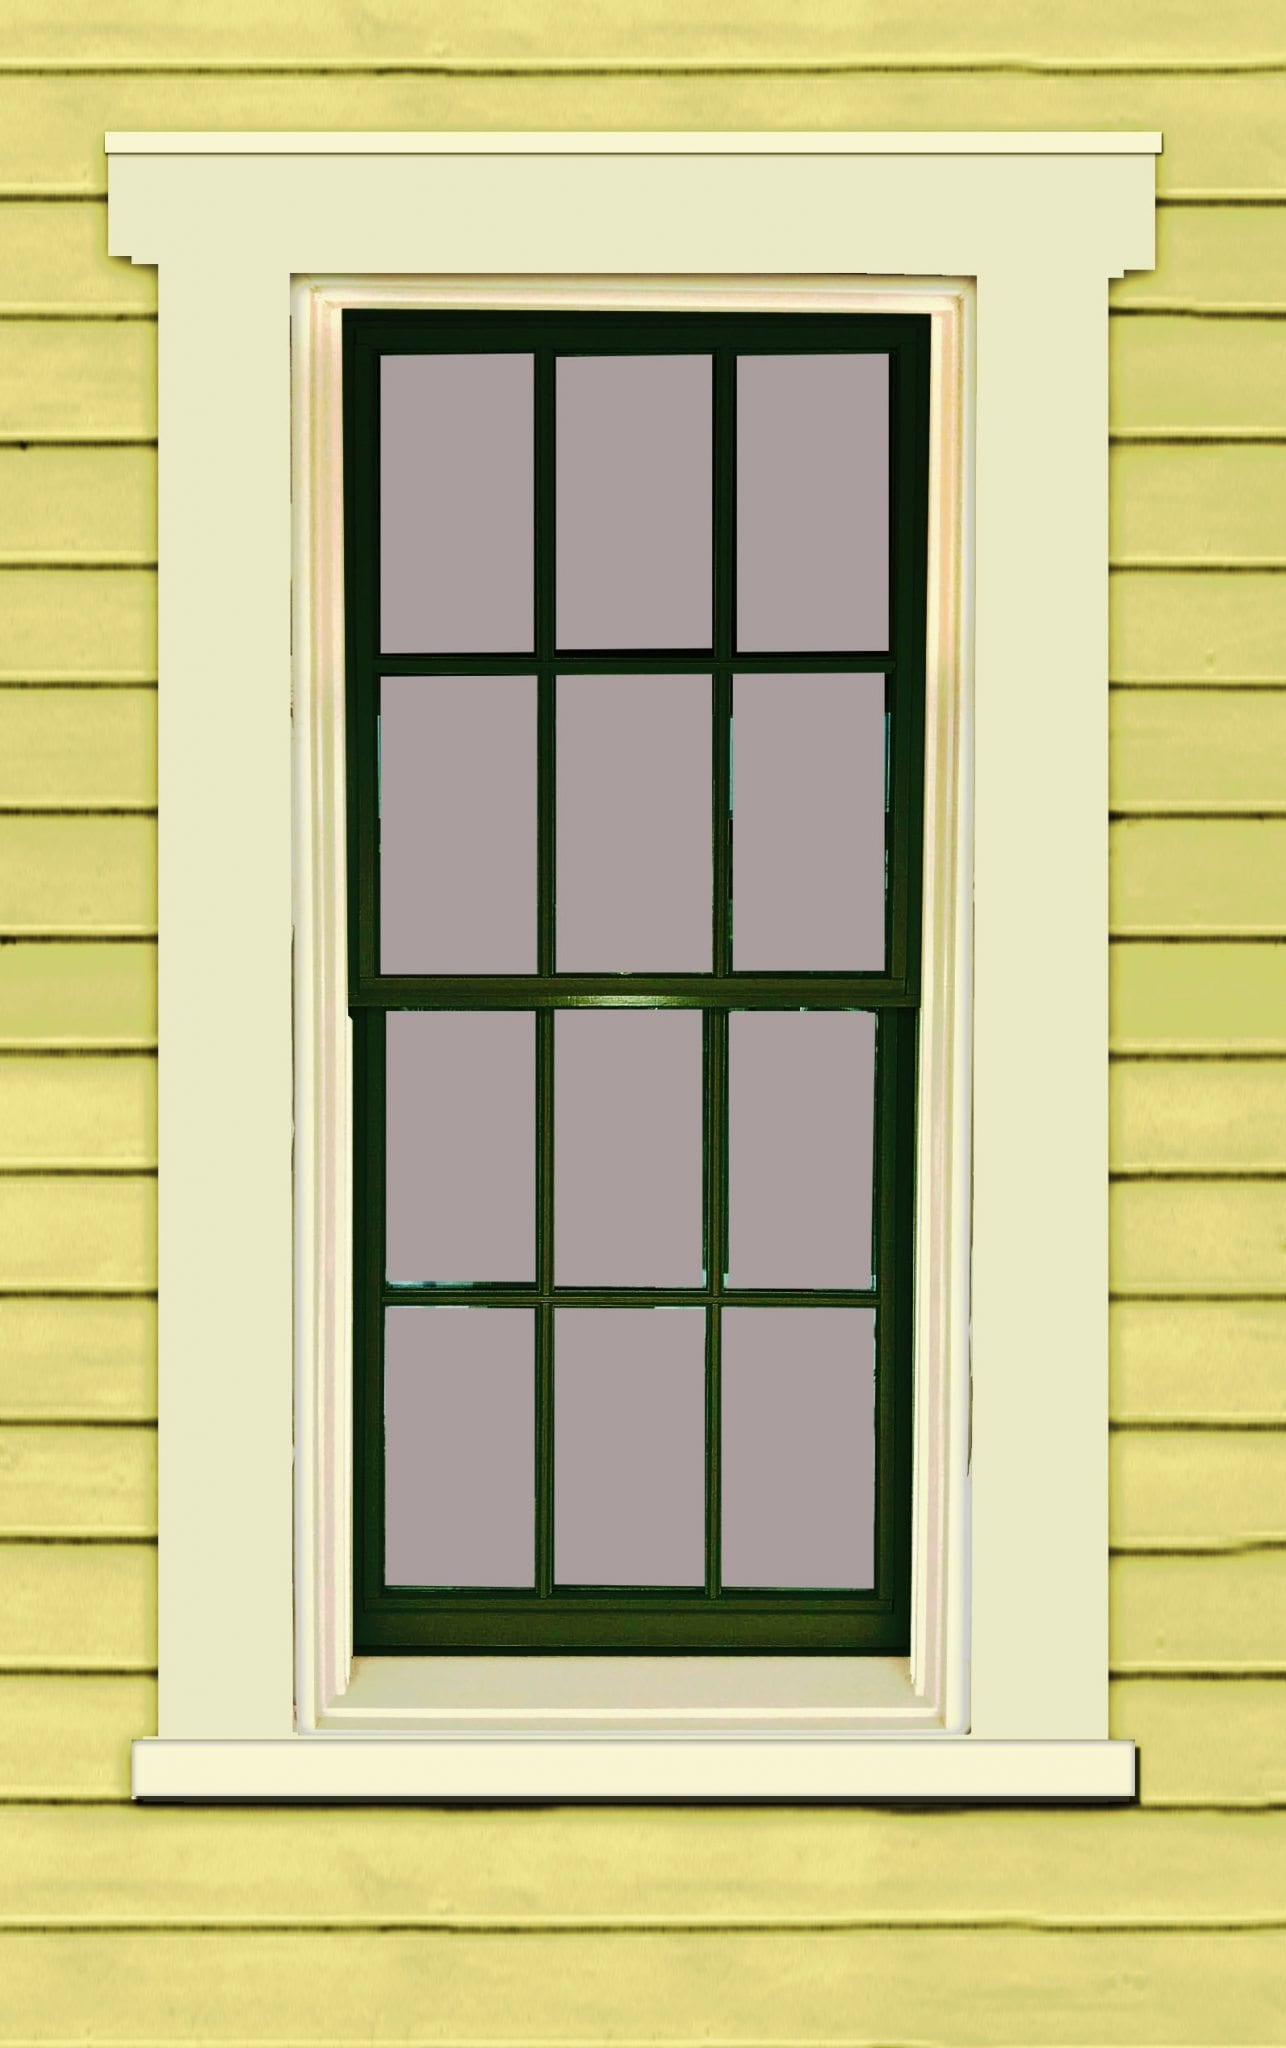 gallery glass window color instructions